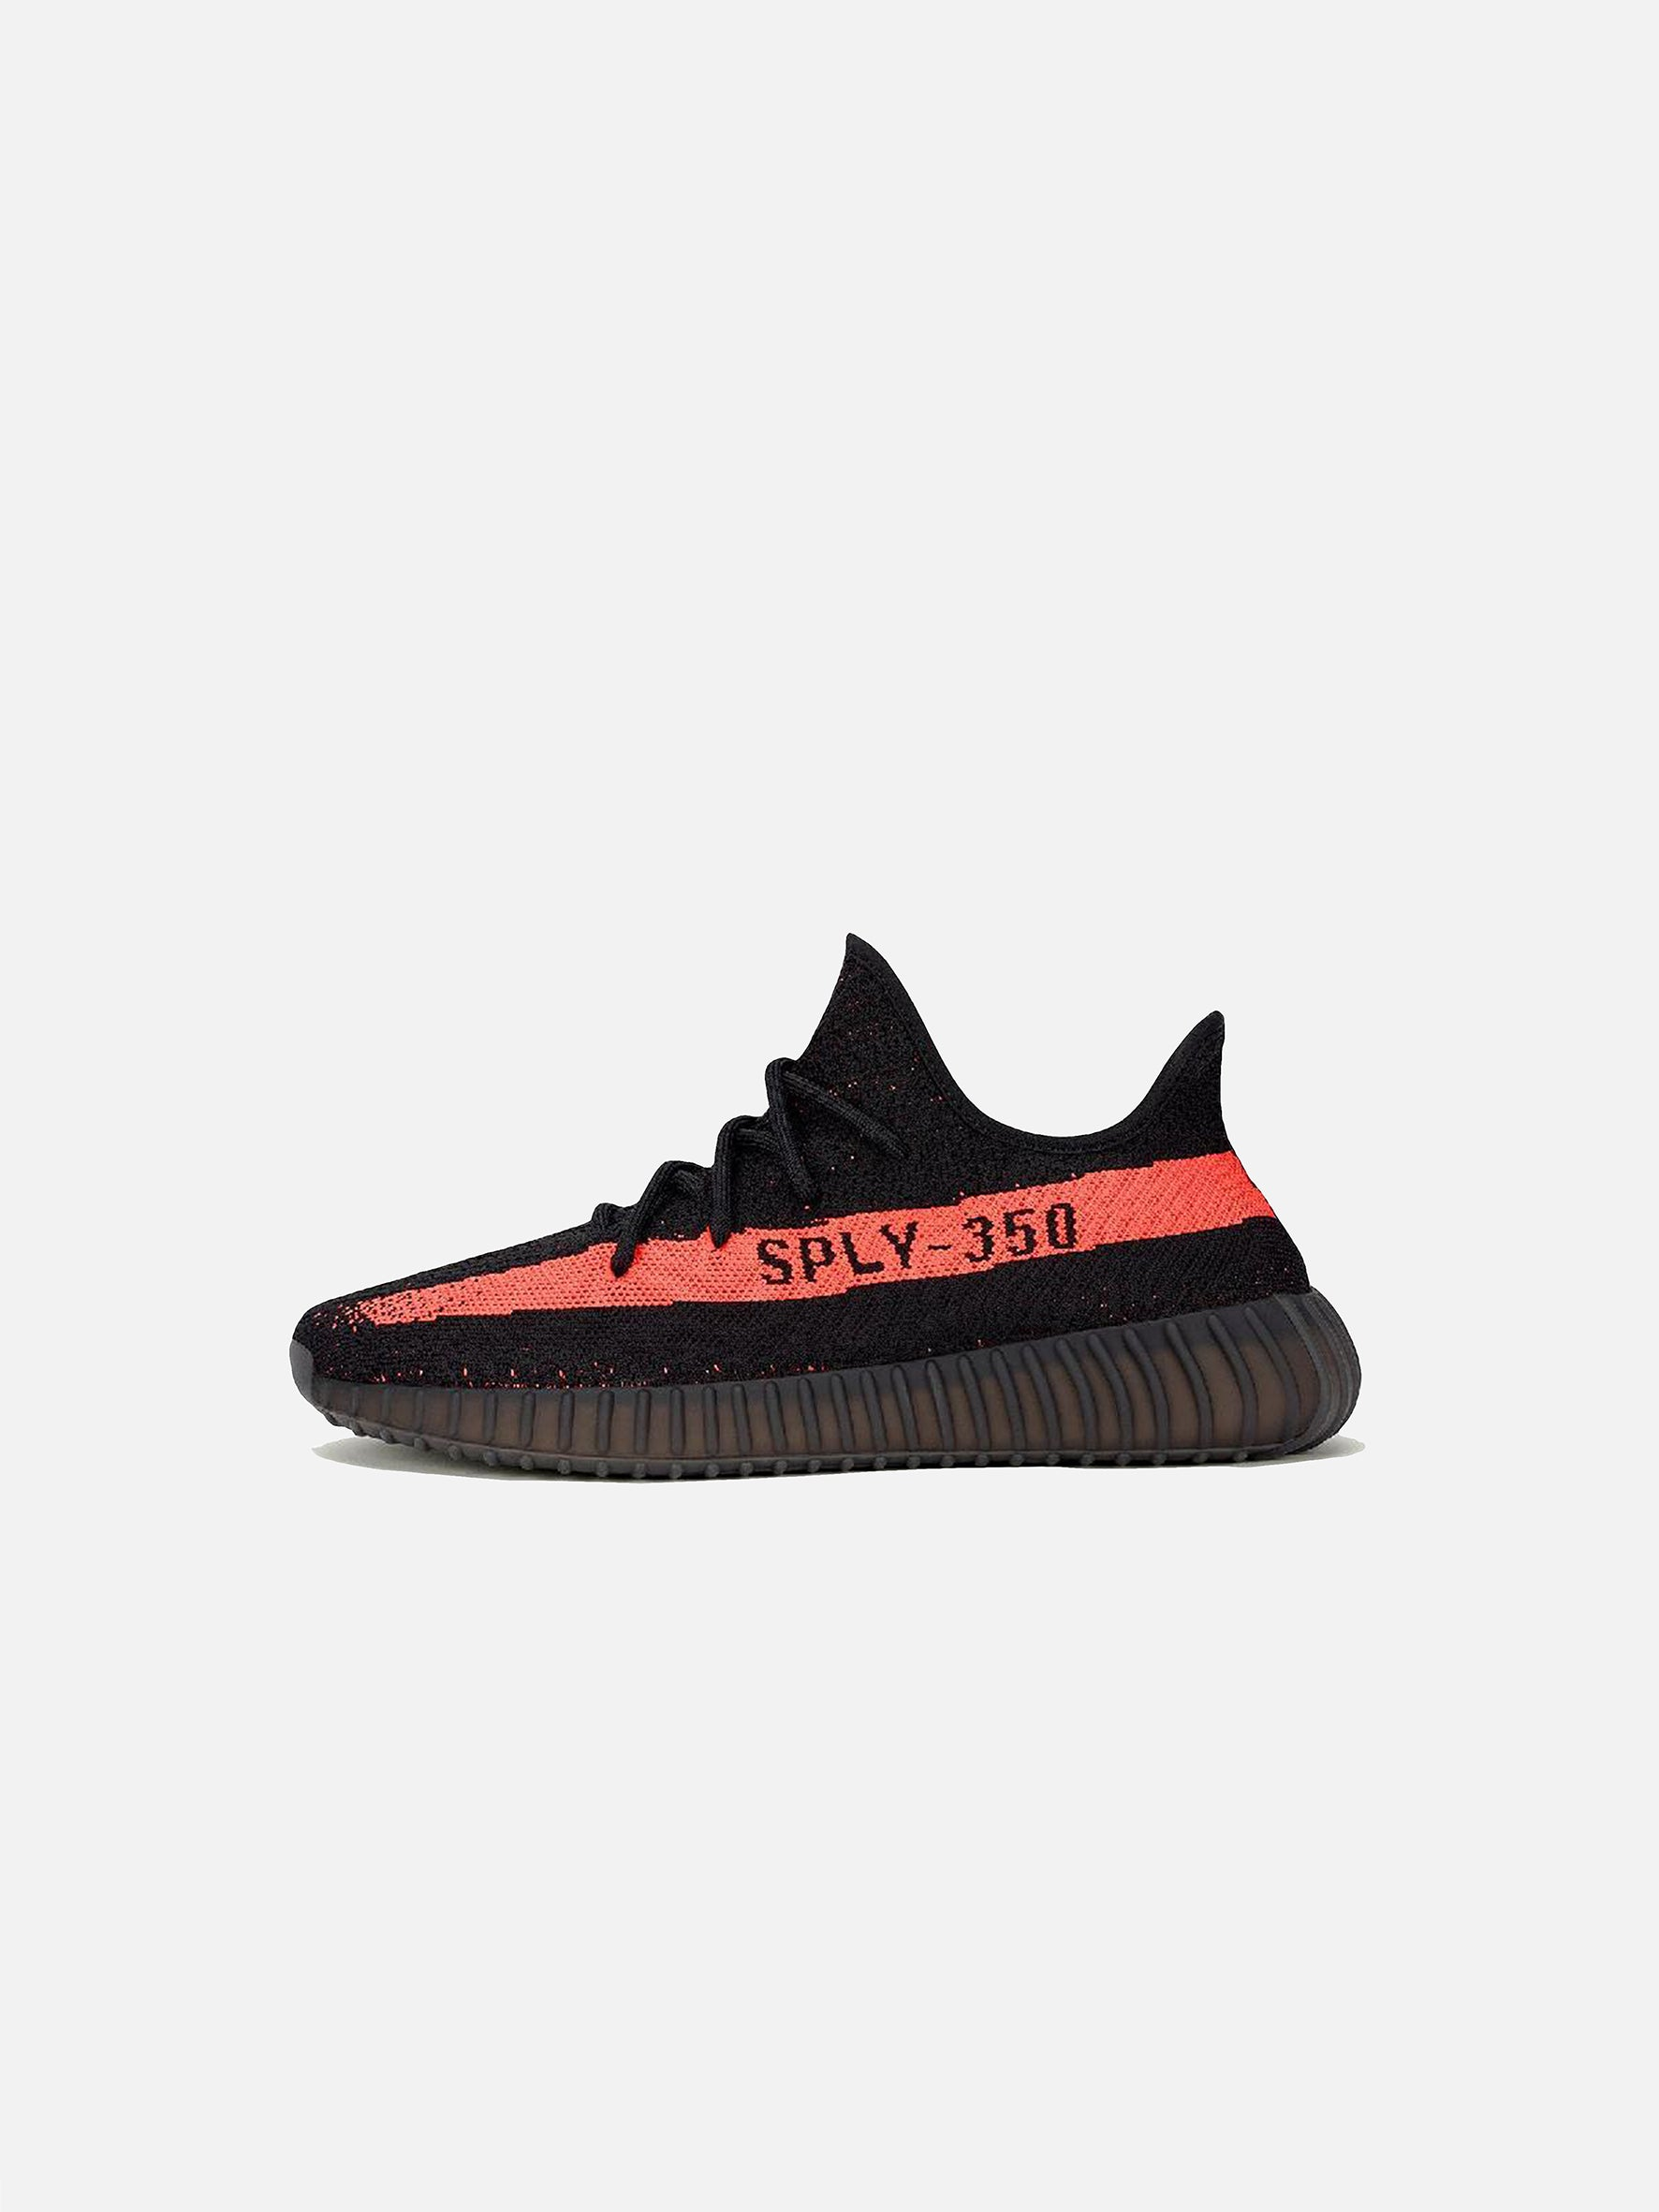 Adidas Yeezy Boost 350 V2 Core Black / Red